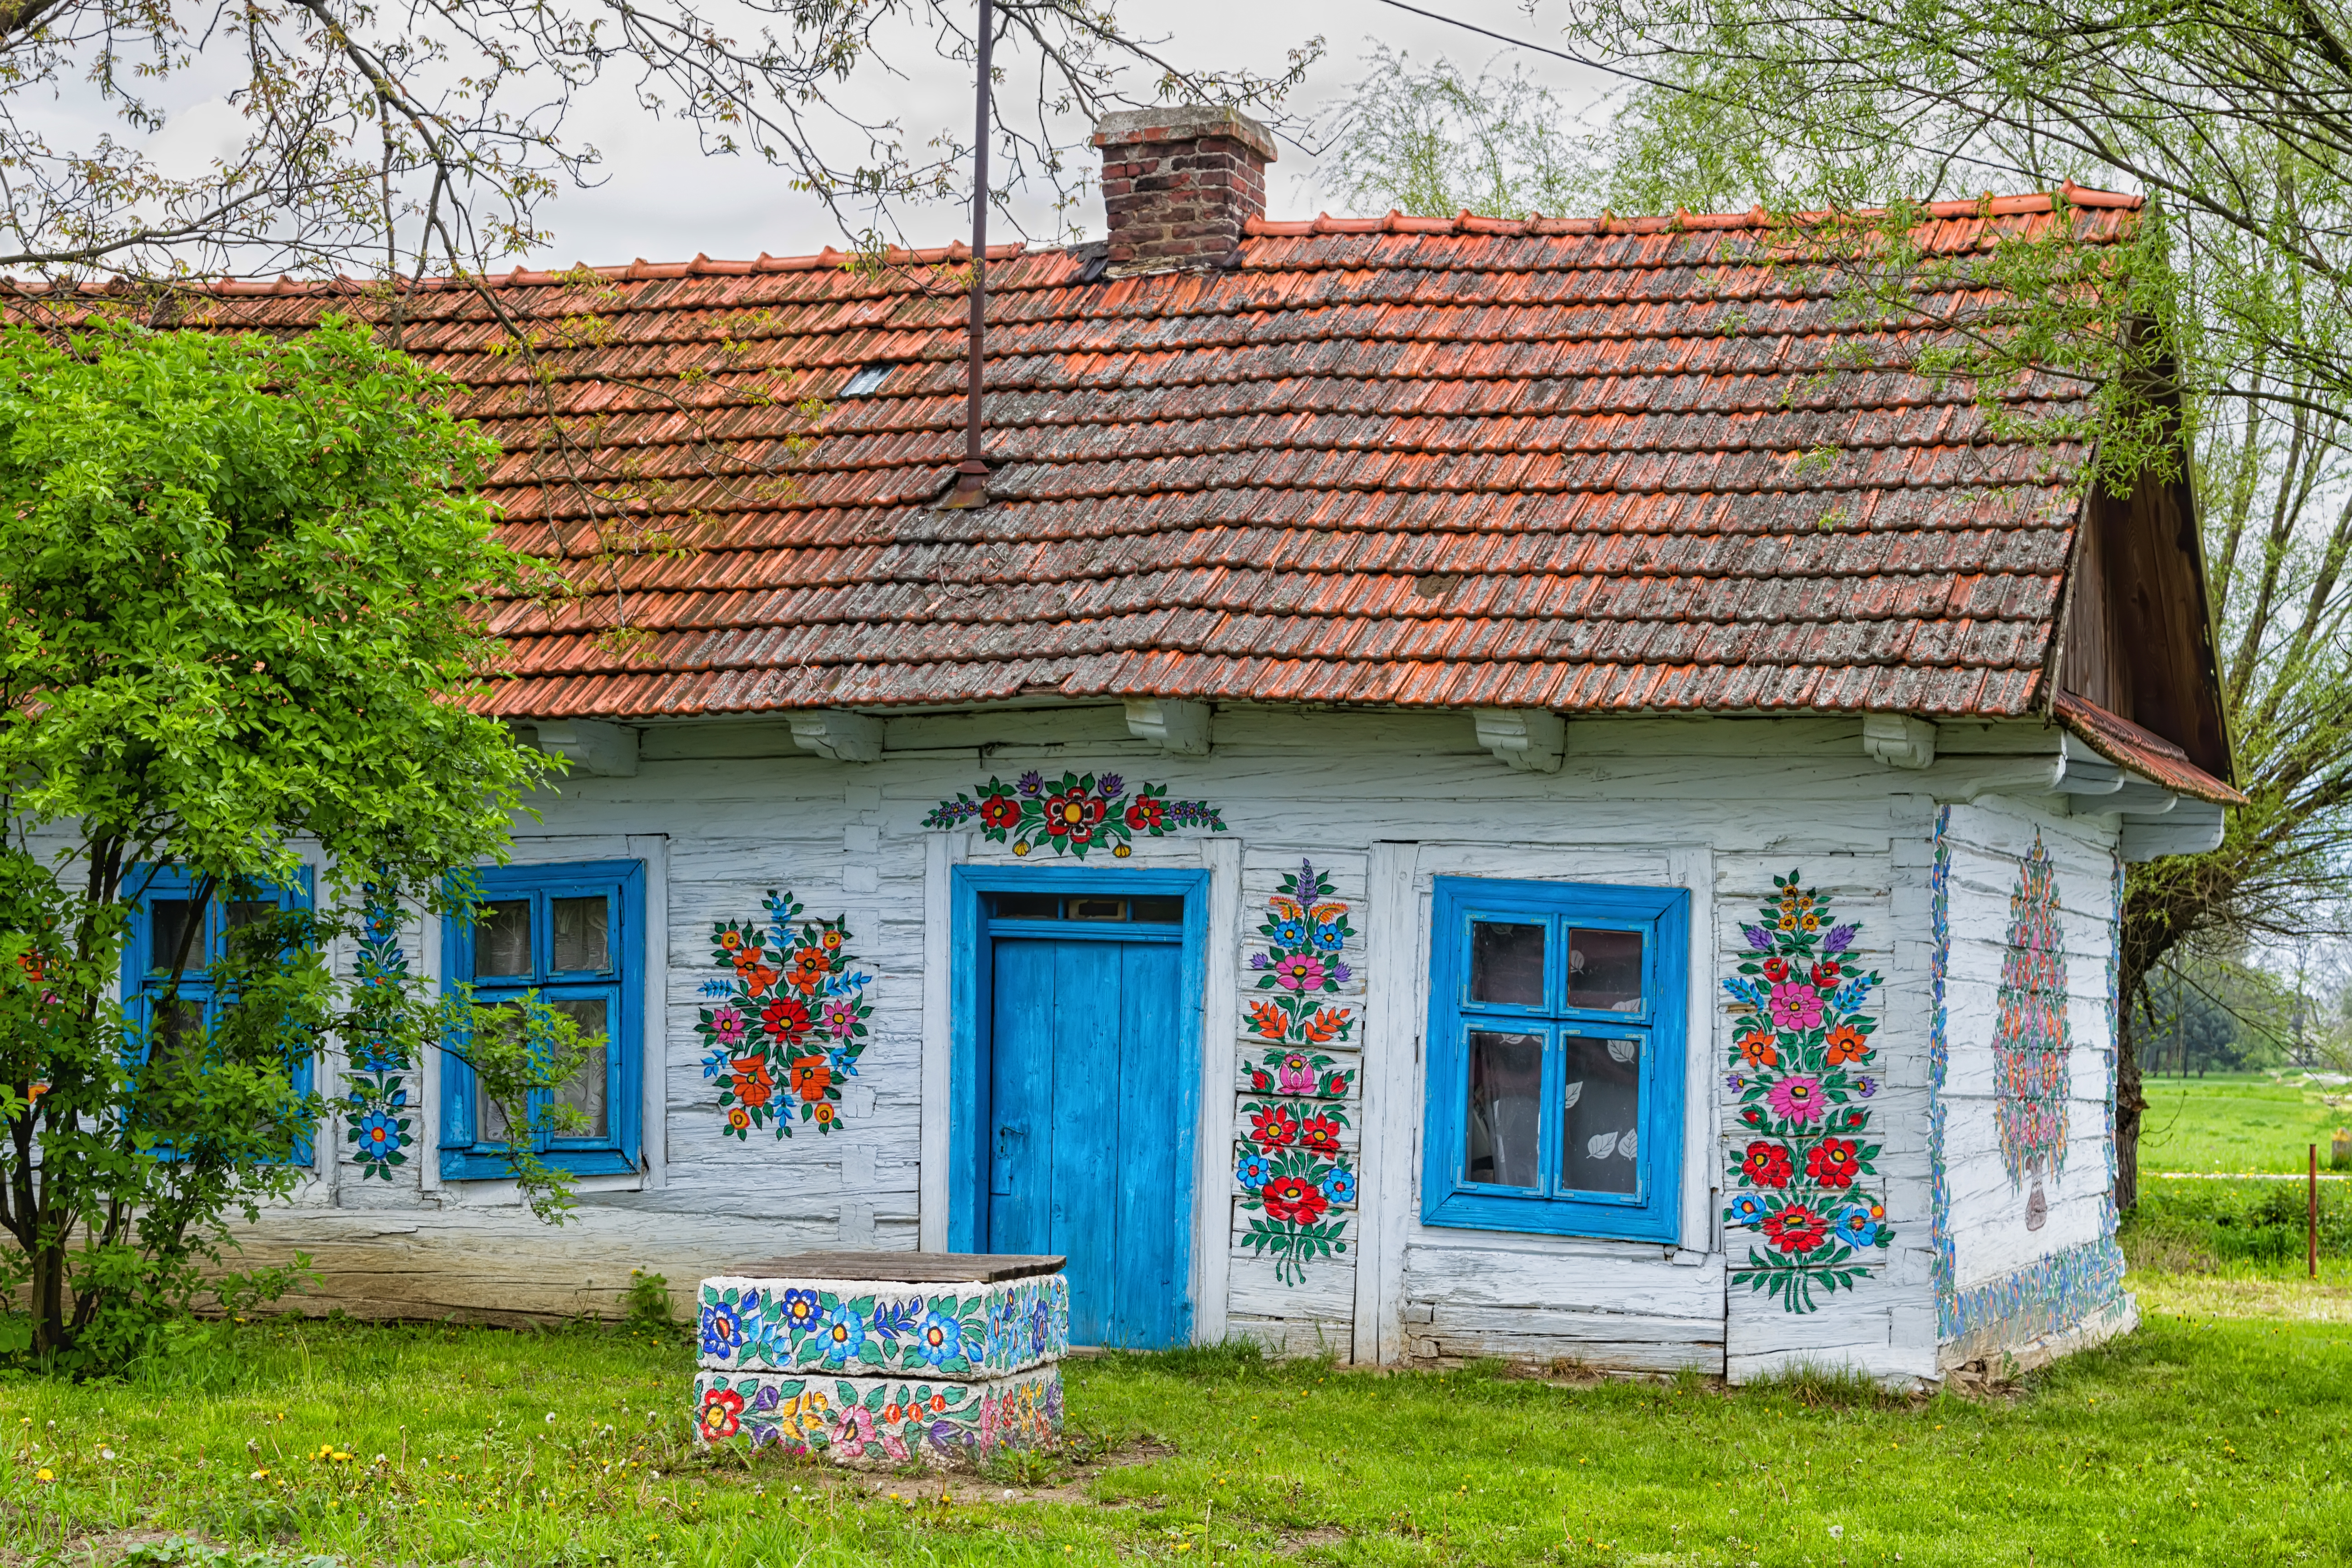 This tiny Polish village might be the most Instagrammable spot in